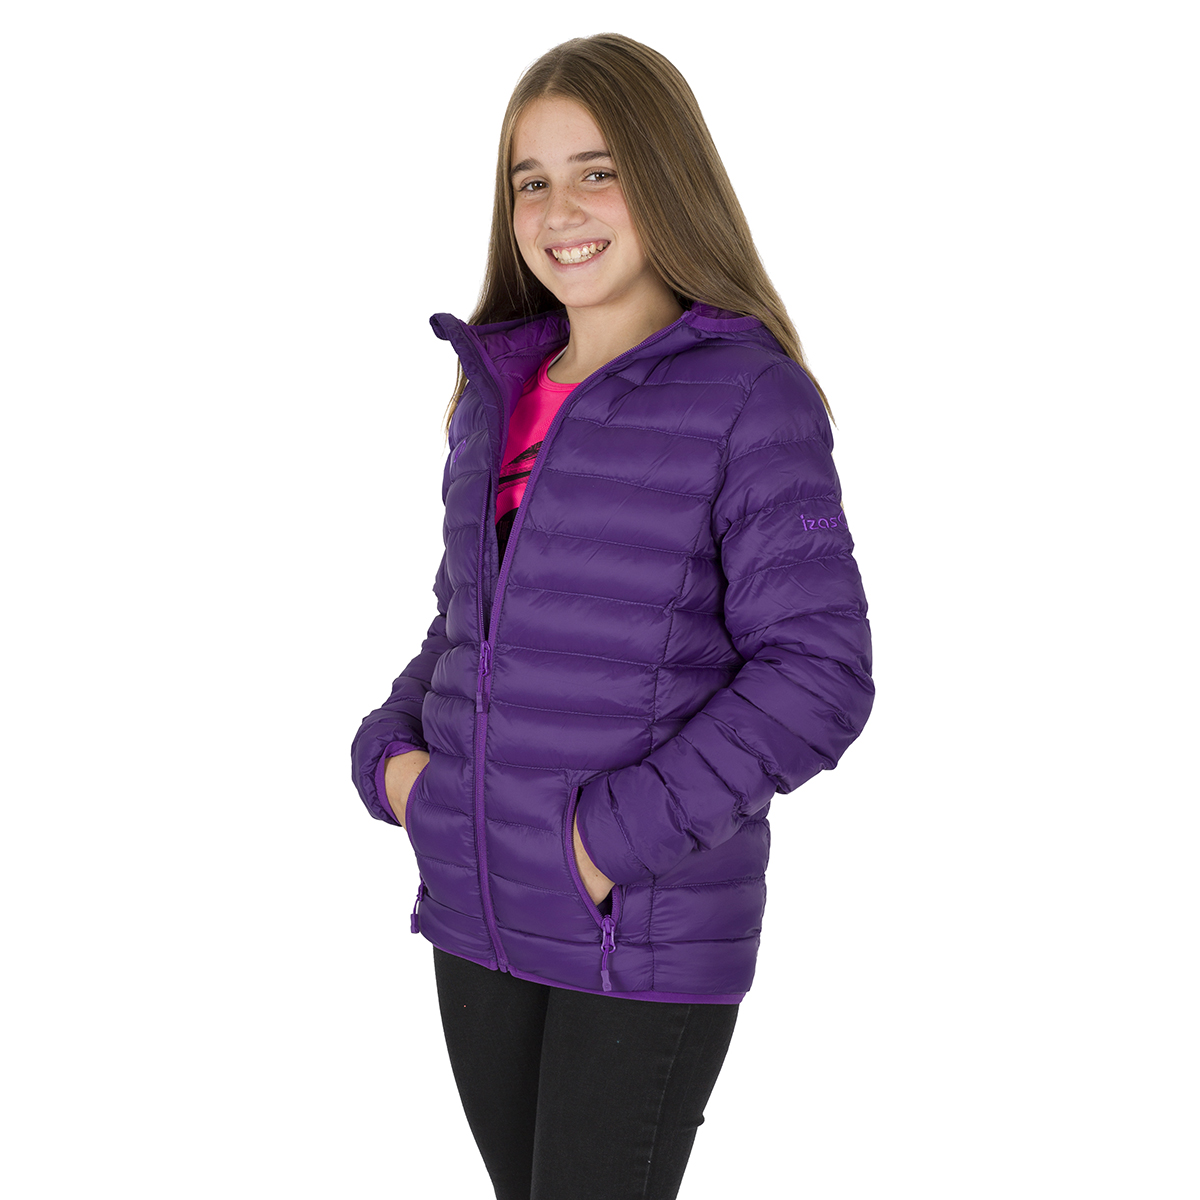 AILAMA-KIDS-DARKPURPLE-PURPLE-1